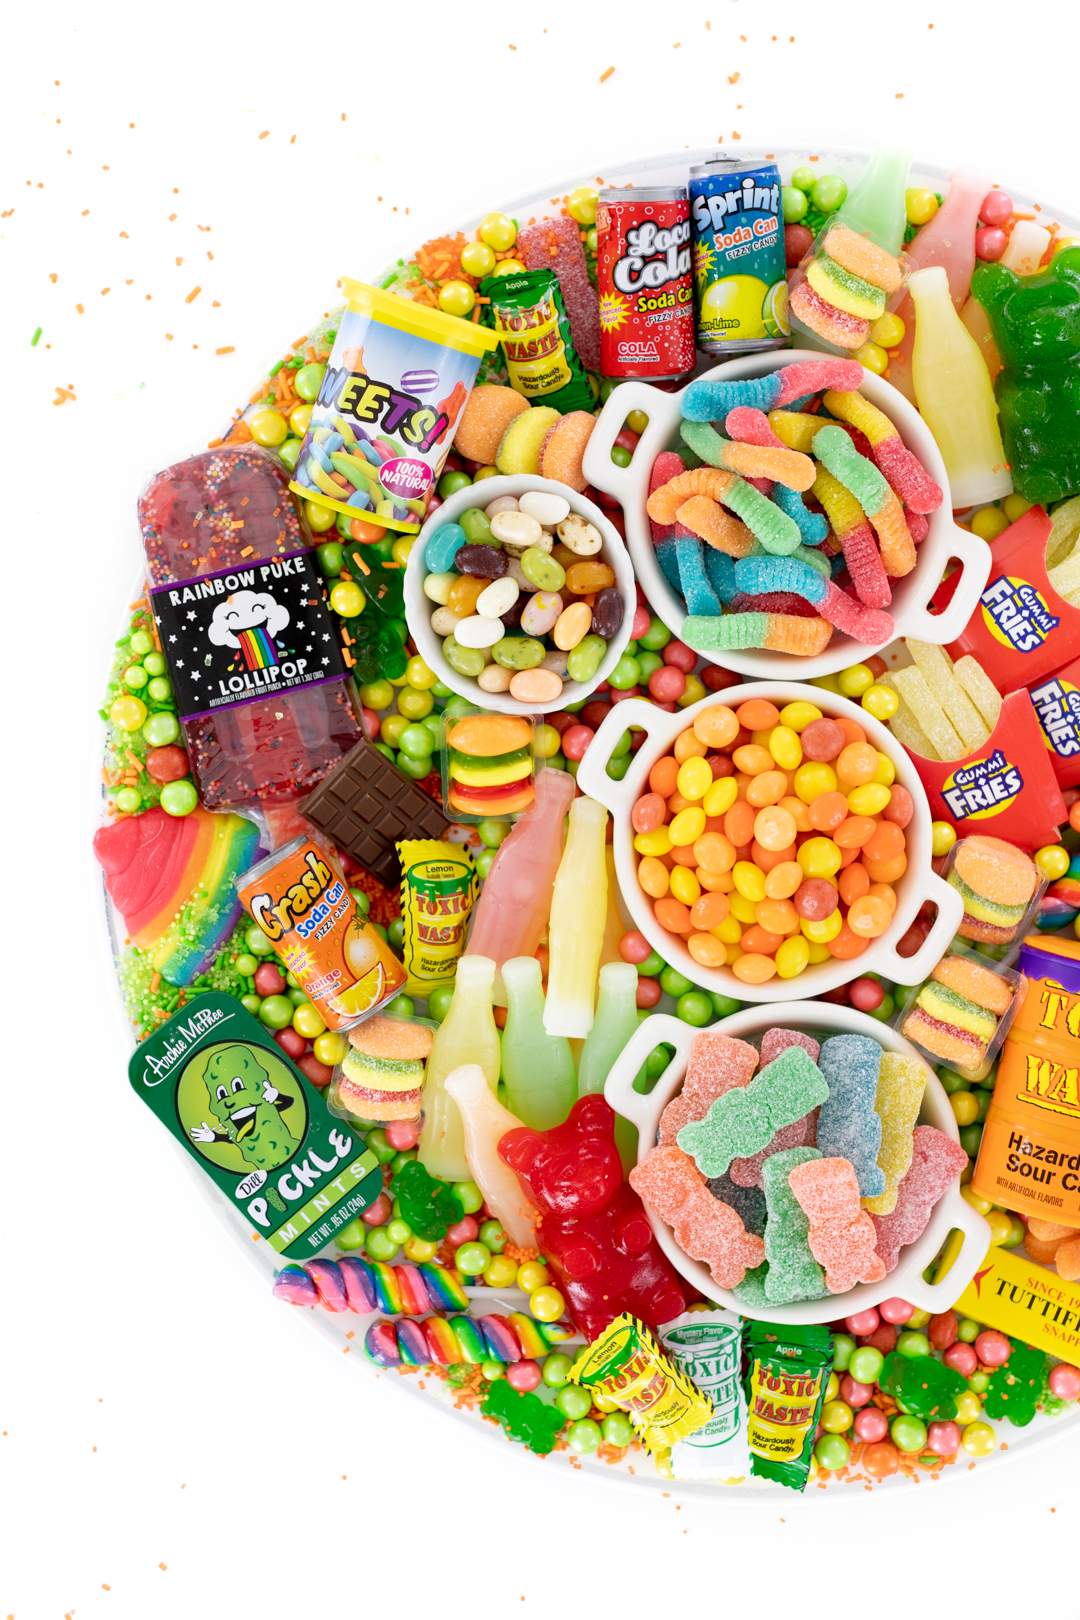 gag candy and pranks on a tray